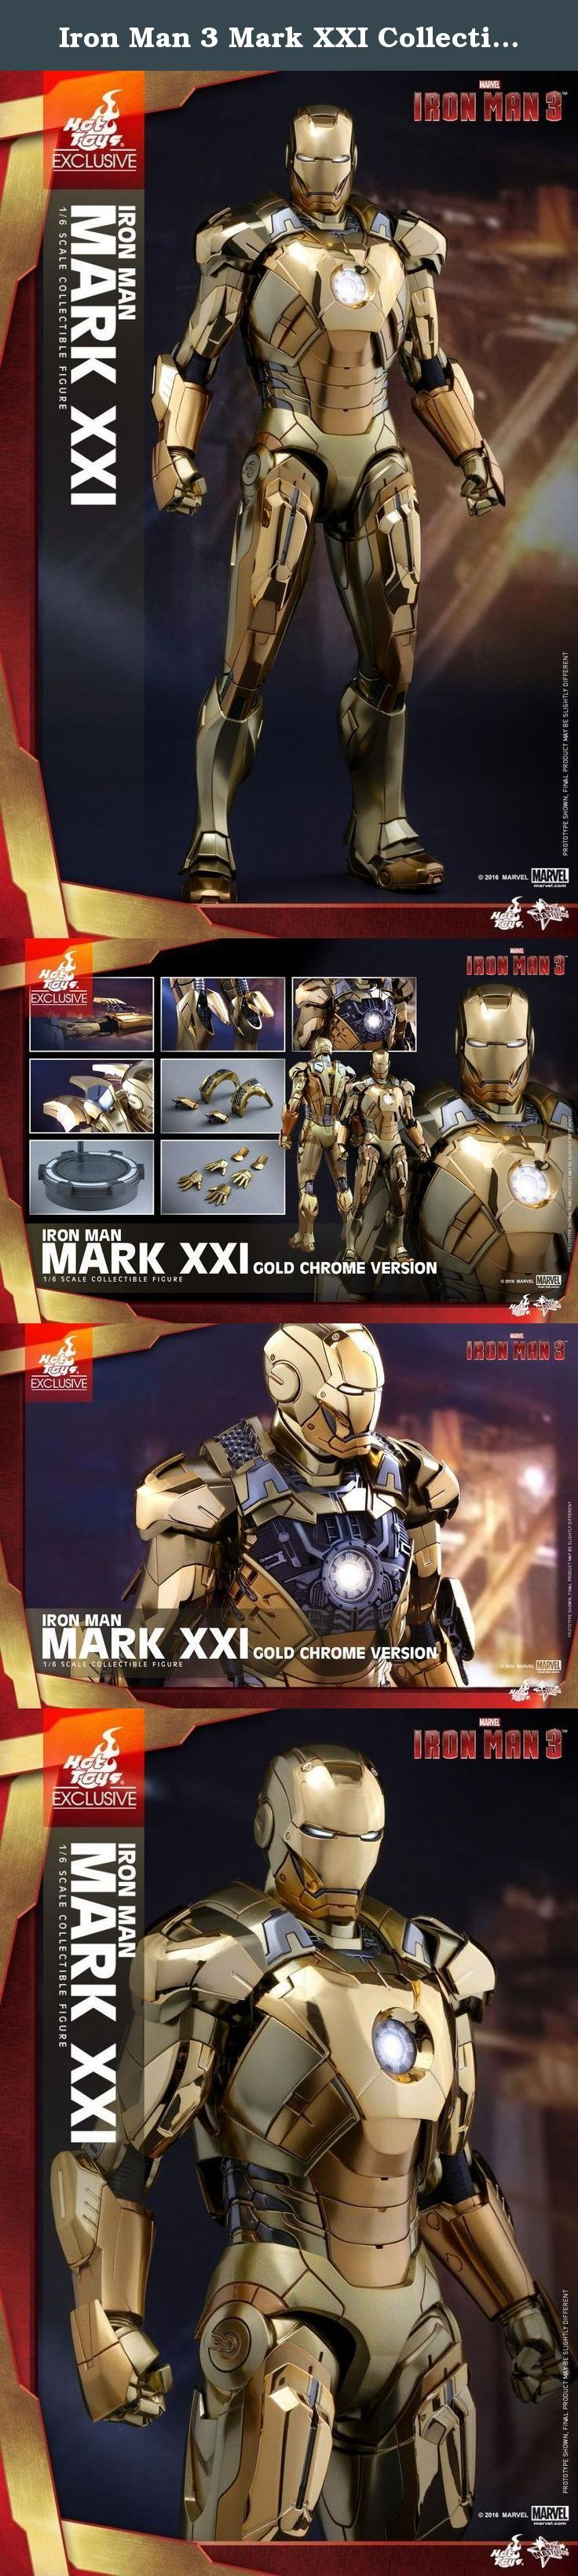 "Iron Man 3 Mark XXI Collectible Figure MMS341 (Gold Chrome Version). The new version of the 1/6th scale collectible figure that has been highly-popular among fans - the Iron Man Midas Mark XXI (Gold Chrome Version). Built for the ""House Party Protocol"" in Iron Man 3 by Tony Stark as a high-altitude suit, this Midas Mark XXI collectible figure features all-new gold chrome armor parts throughout the body complementing the multitude layers and shades of metallic gold color, LED light-up..."